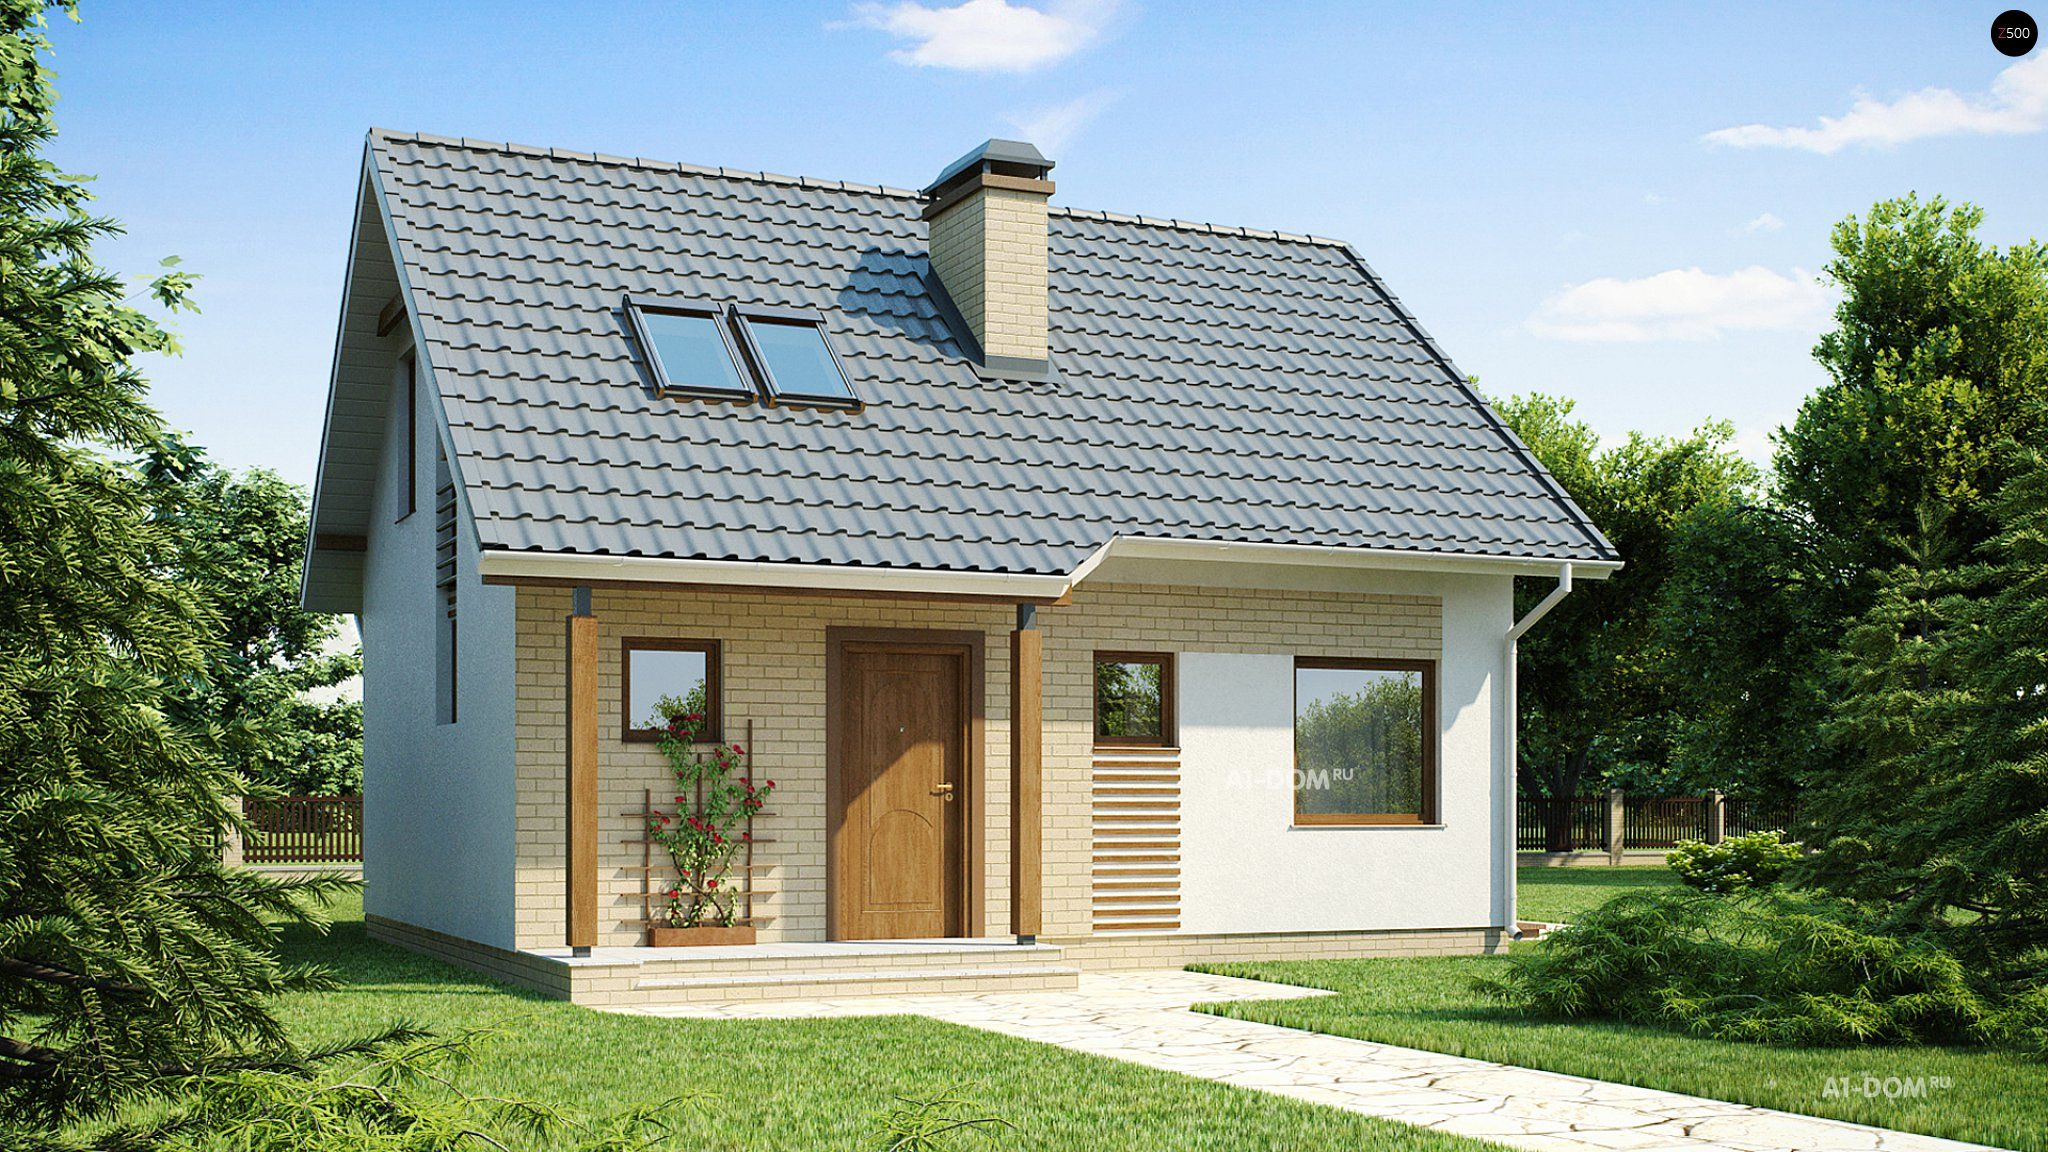 Projects house up to 100m2 from foam blocks